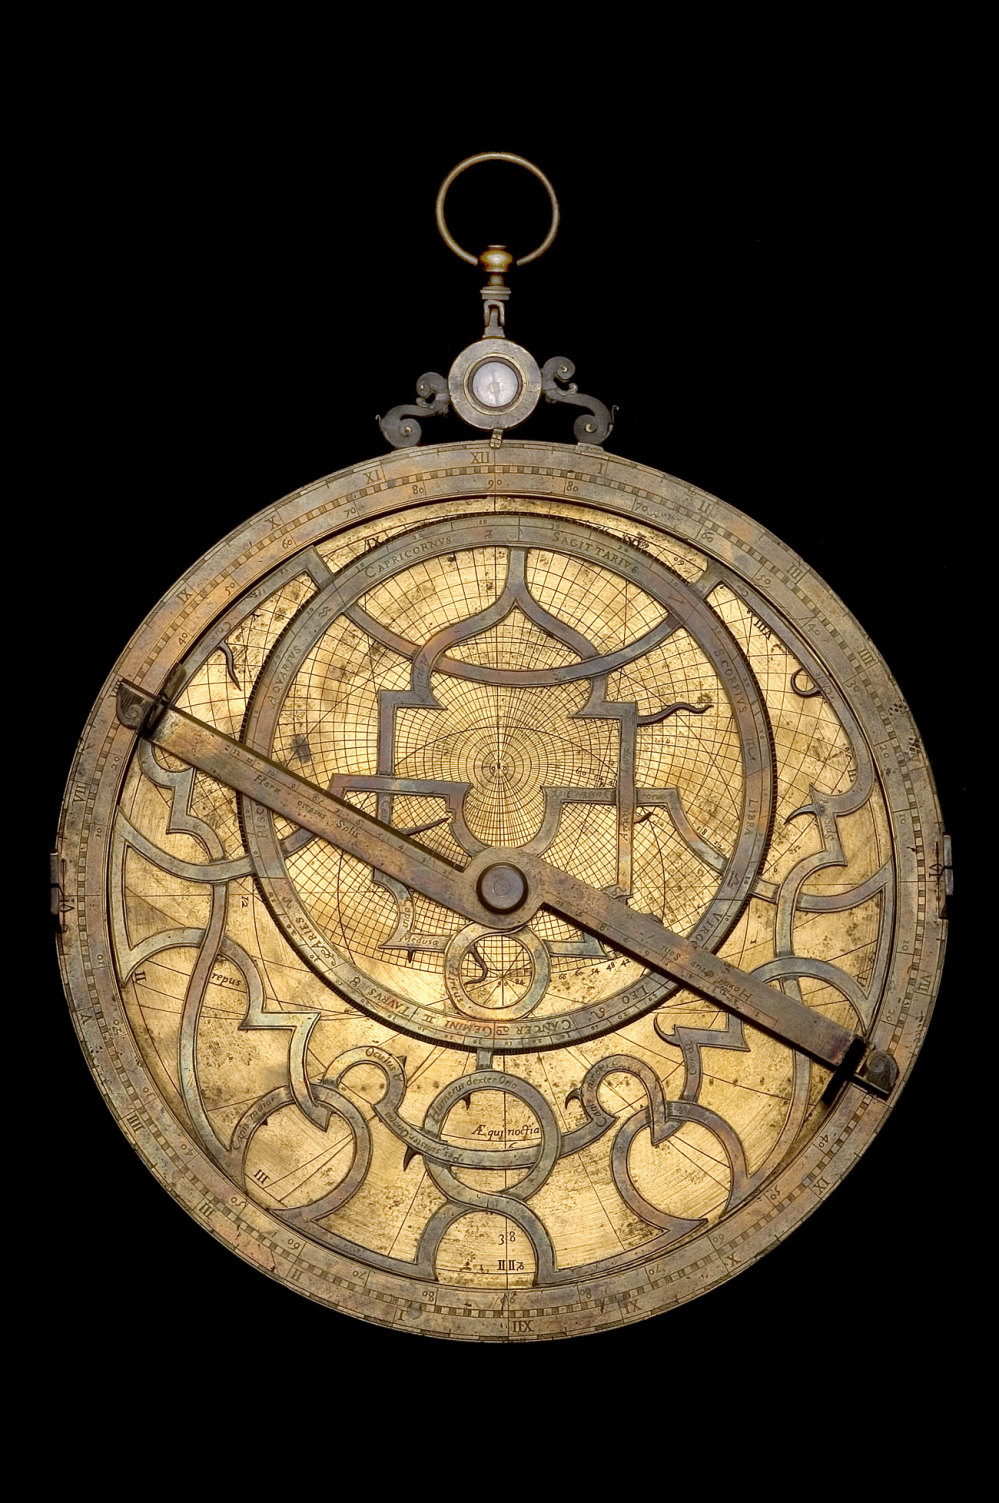 preview image for Astrolabe, attributed to Michiel Coignet, Antwerp?, Early 17th Century